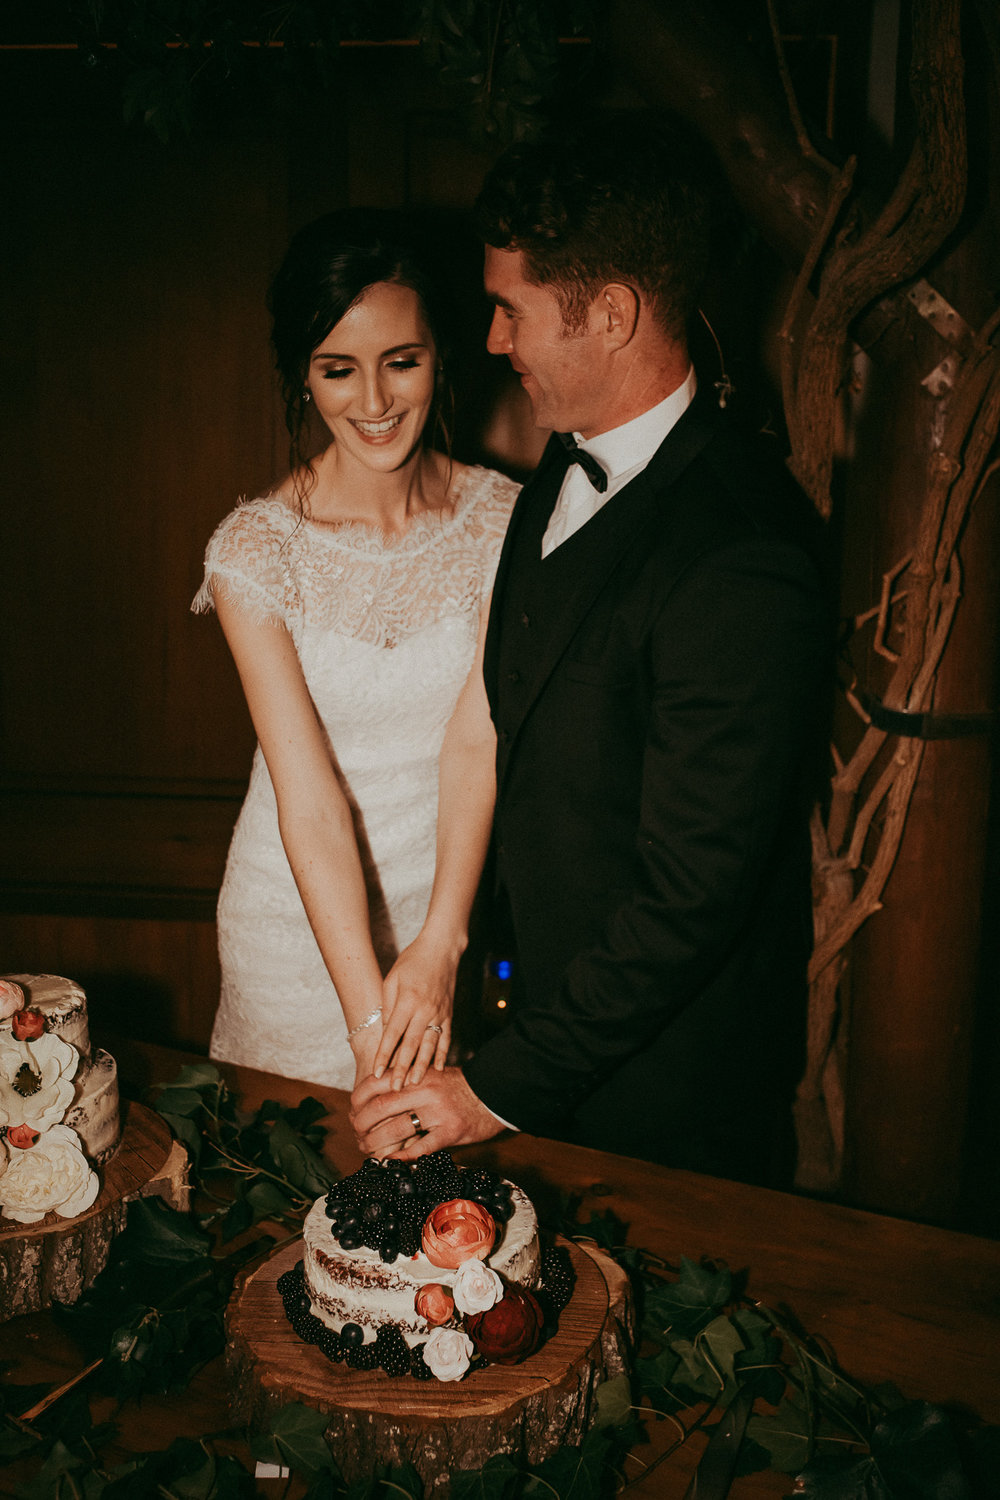 bride and groom cake cutting at reception - Markovina {West Auckland best wedding photographers}